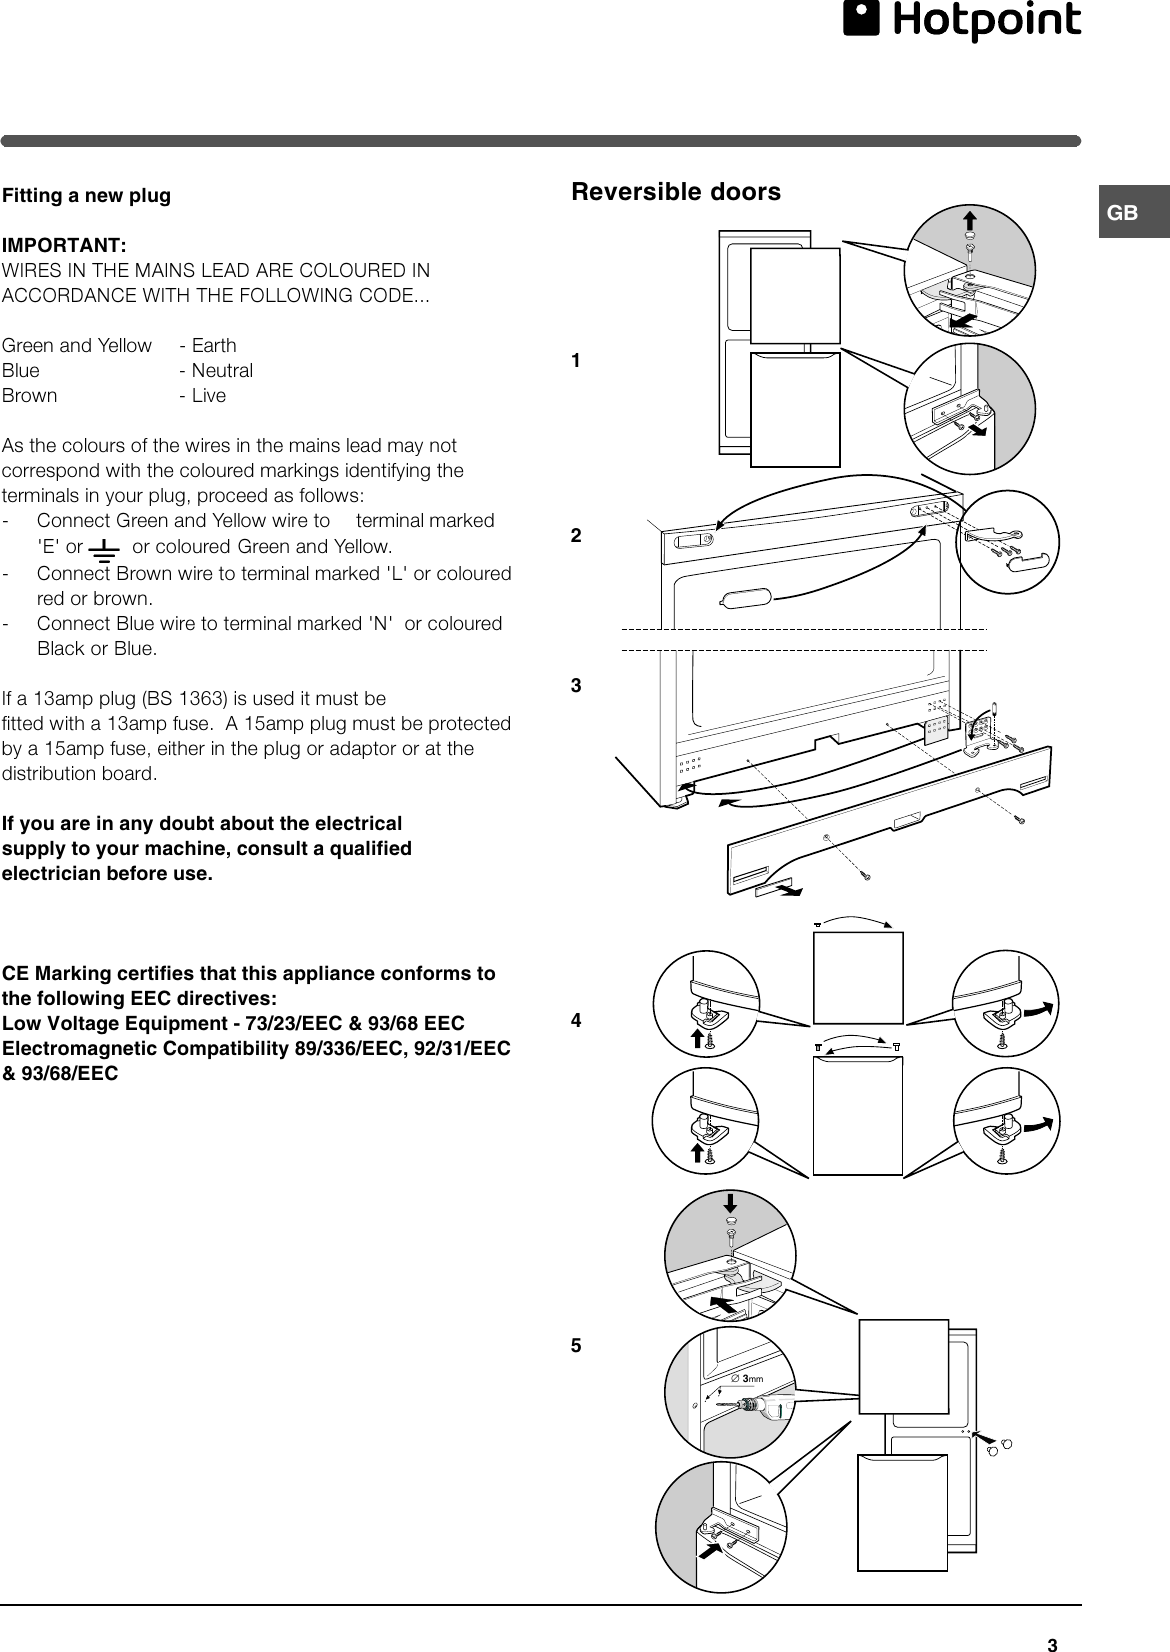 Hotpoint Ff175b Users Manual 44802gb Air Conditioner Wiring Diagram Page 3 Of 12